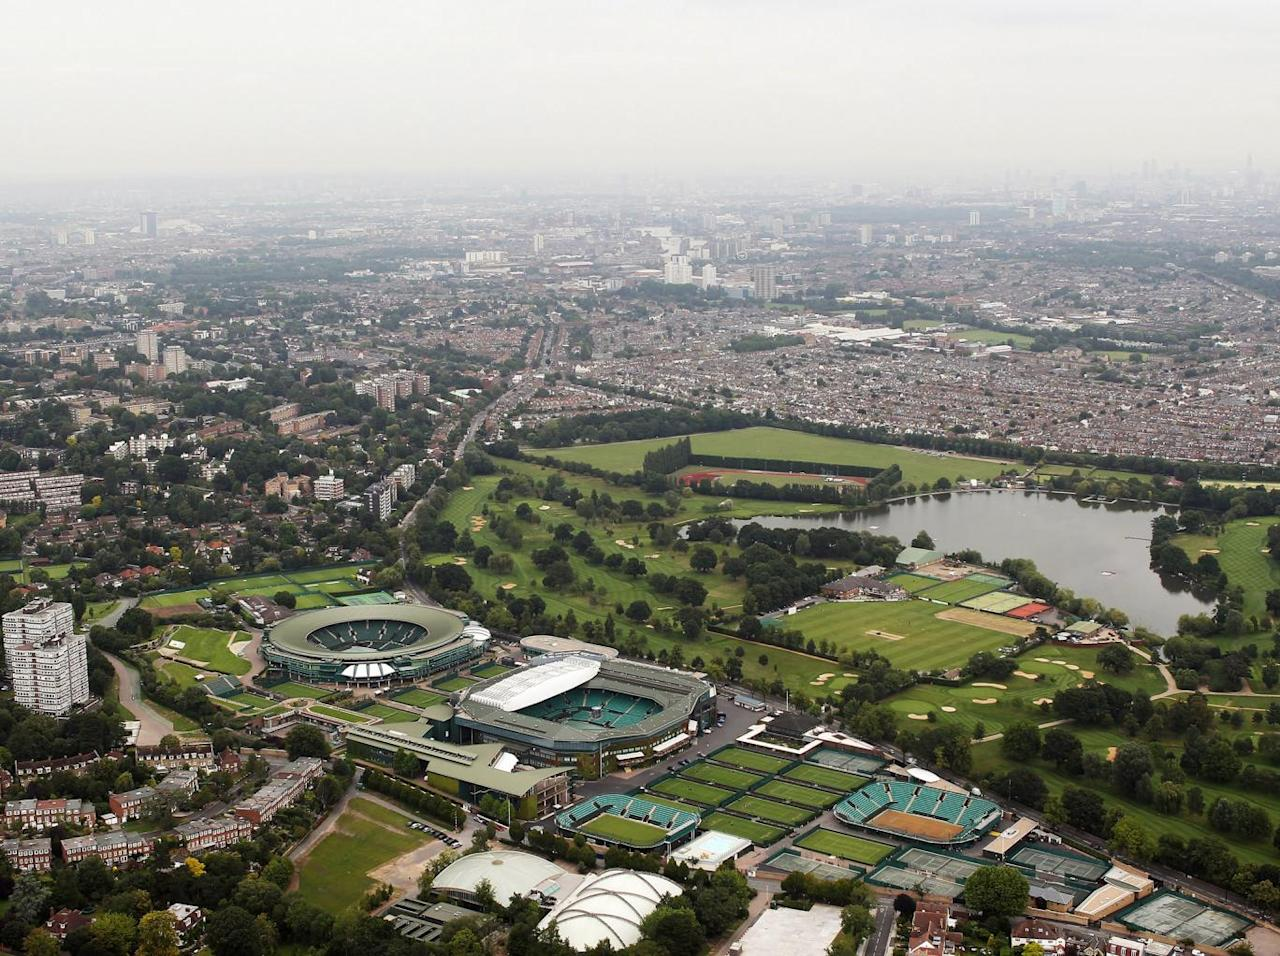 Wimbledon secures £175m loan for retractable roof over No 1 Court